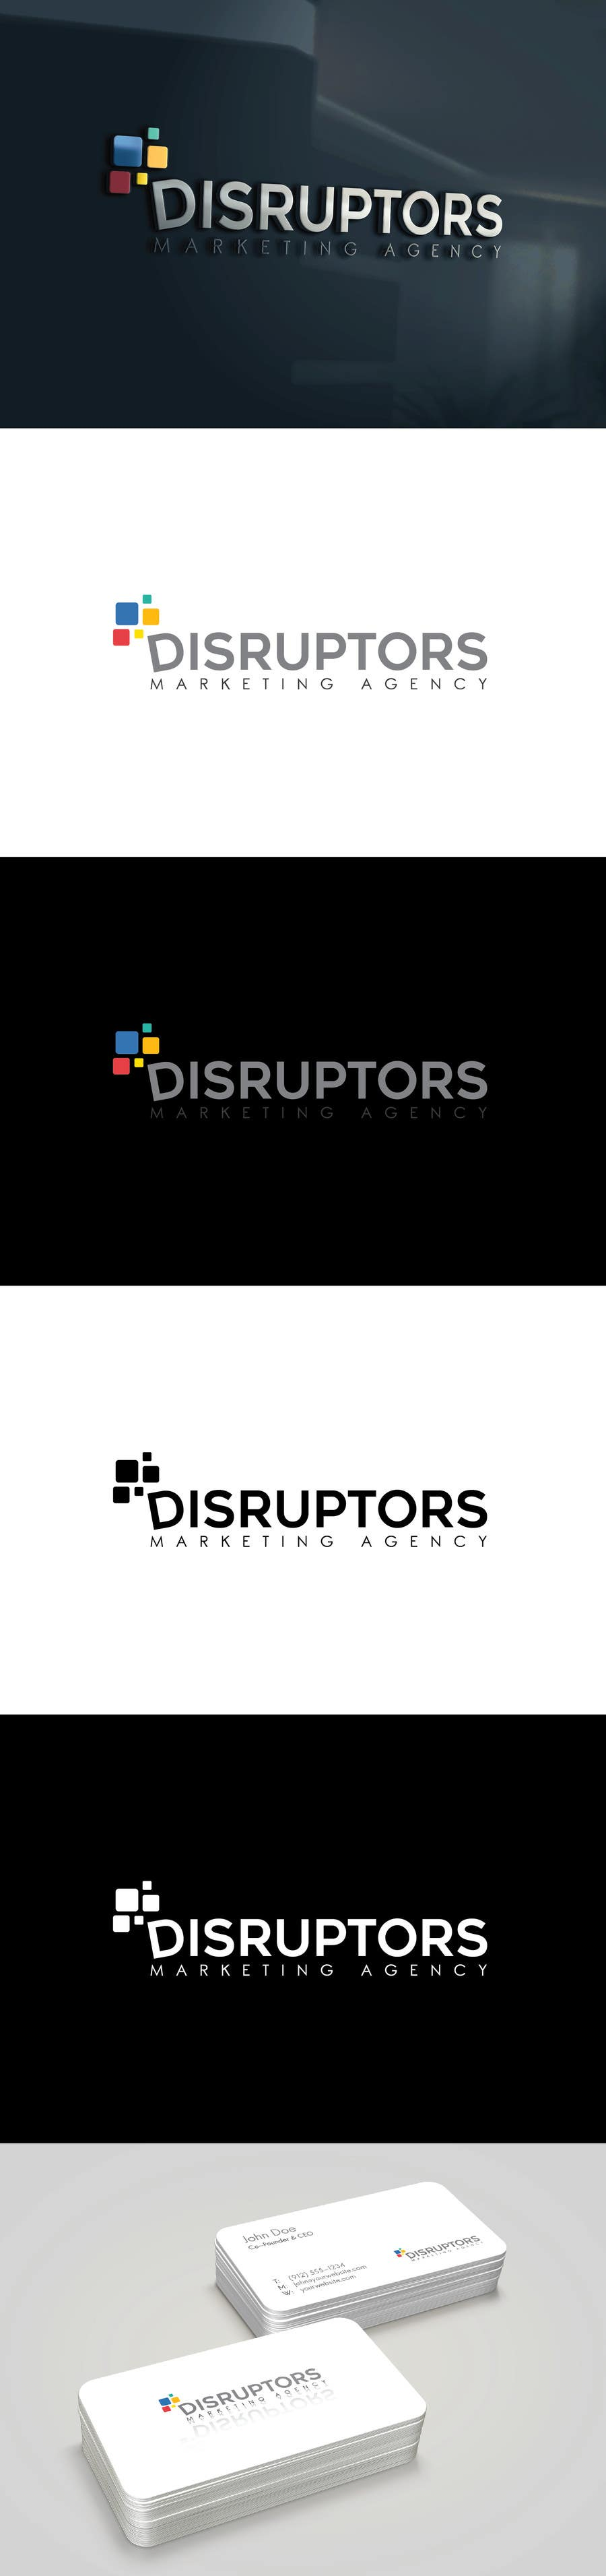 Contest Entry #40 for Logo for Marketing Agency - Disruptors